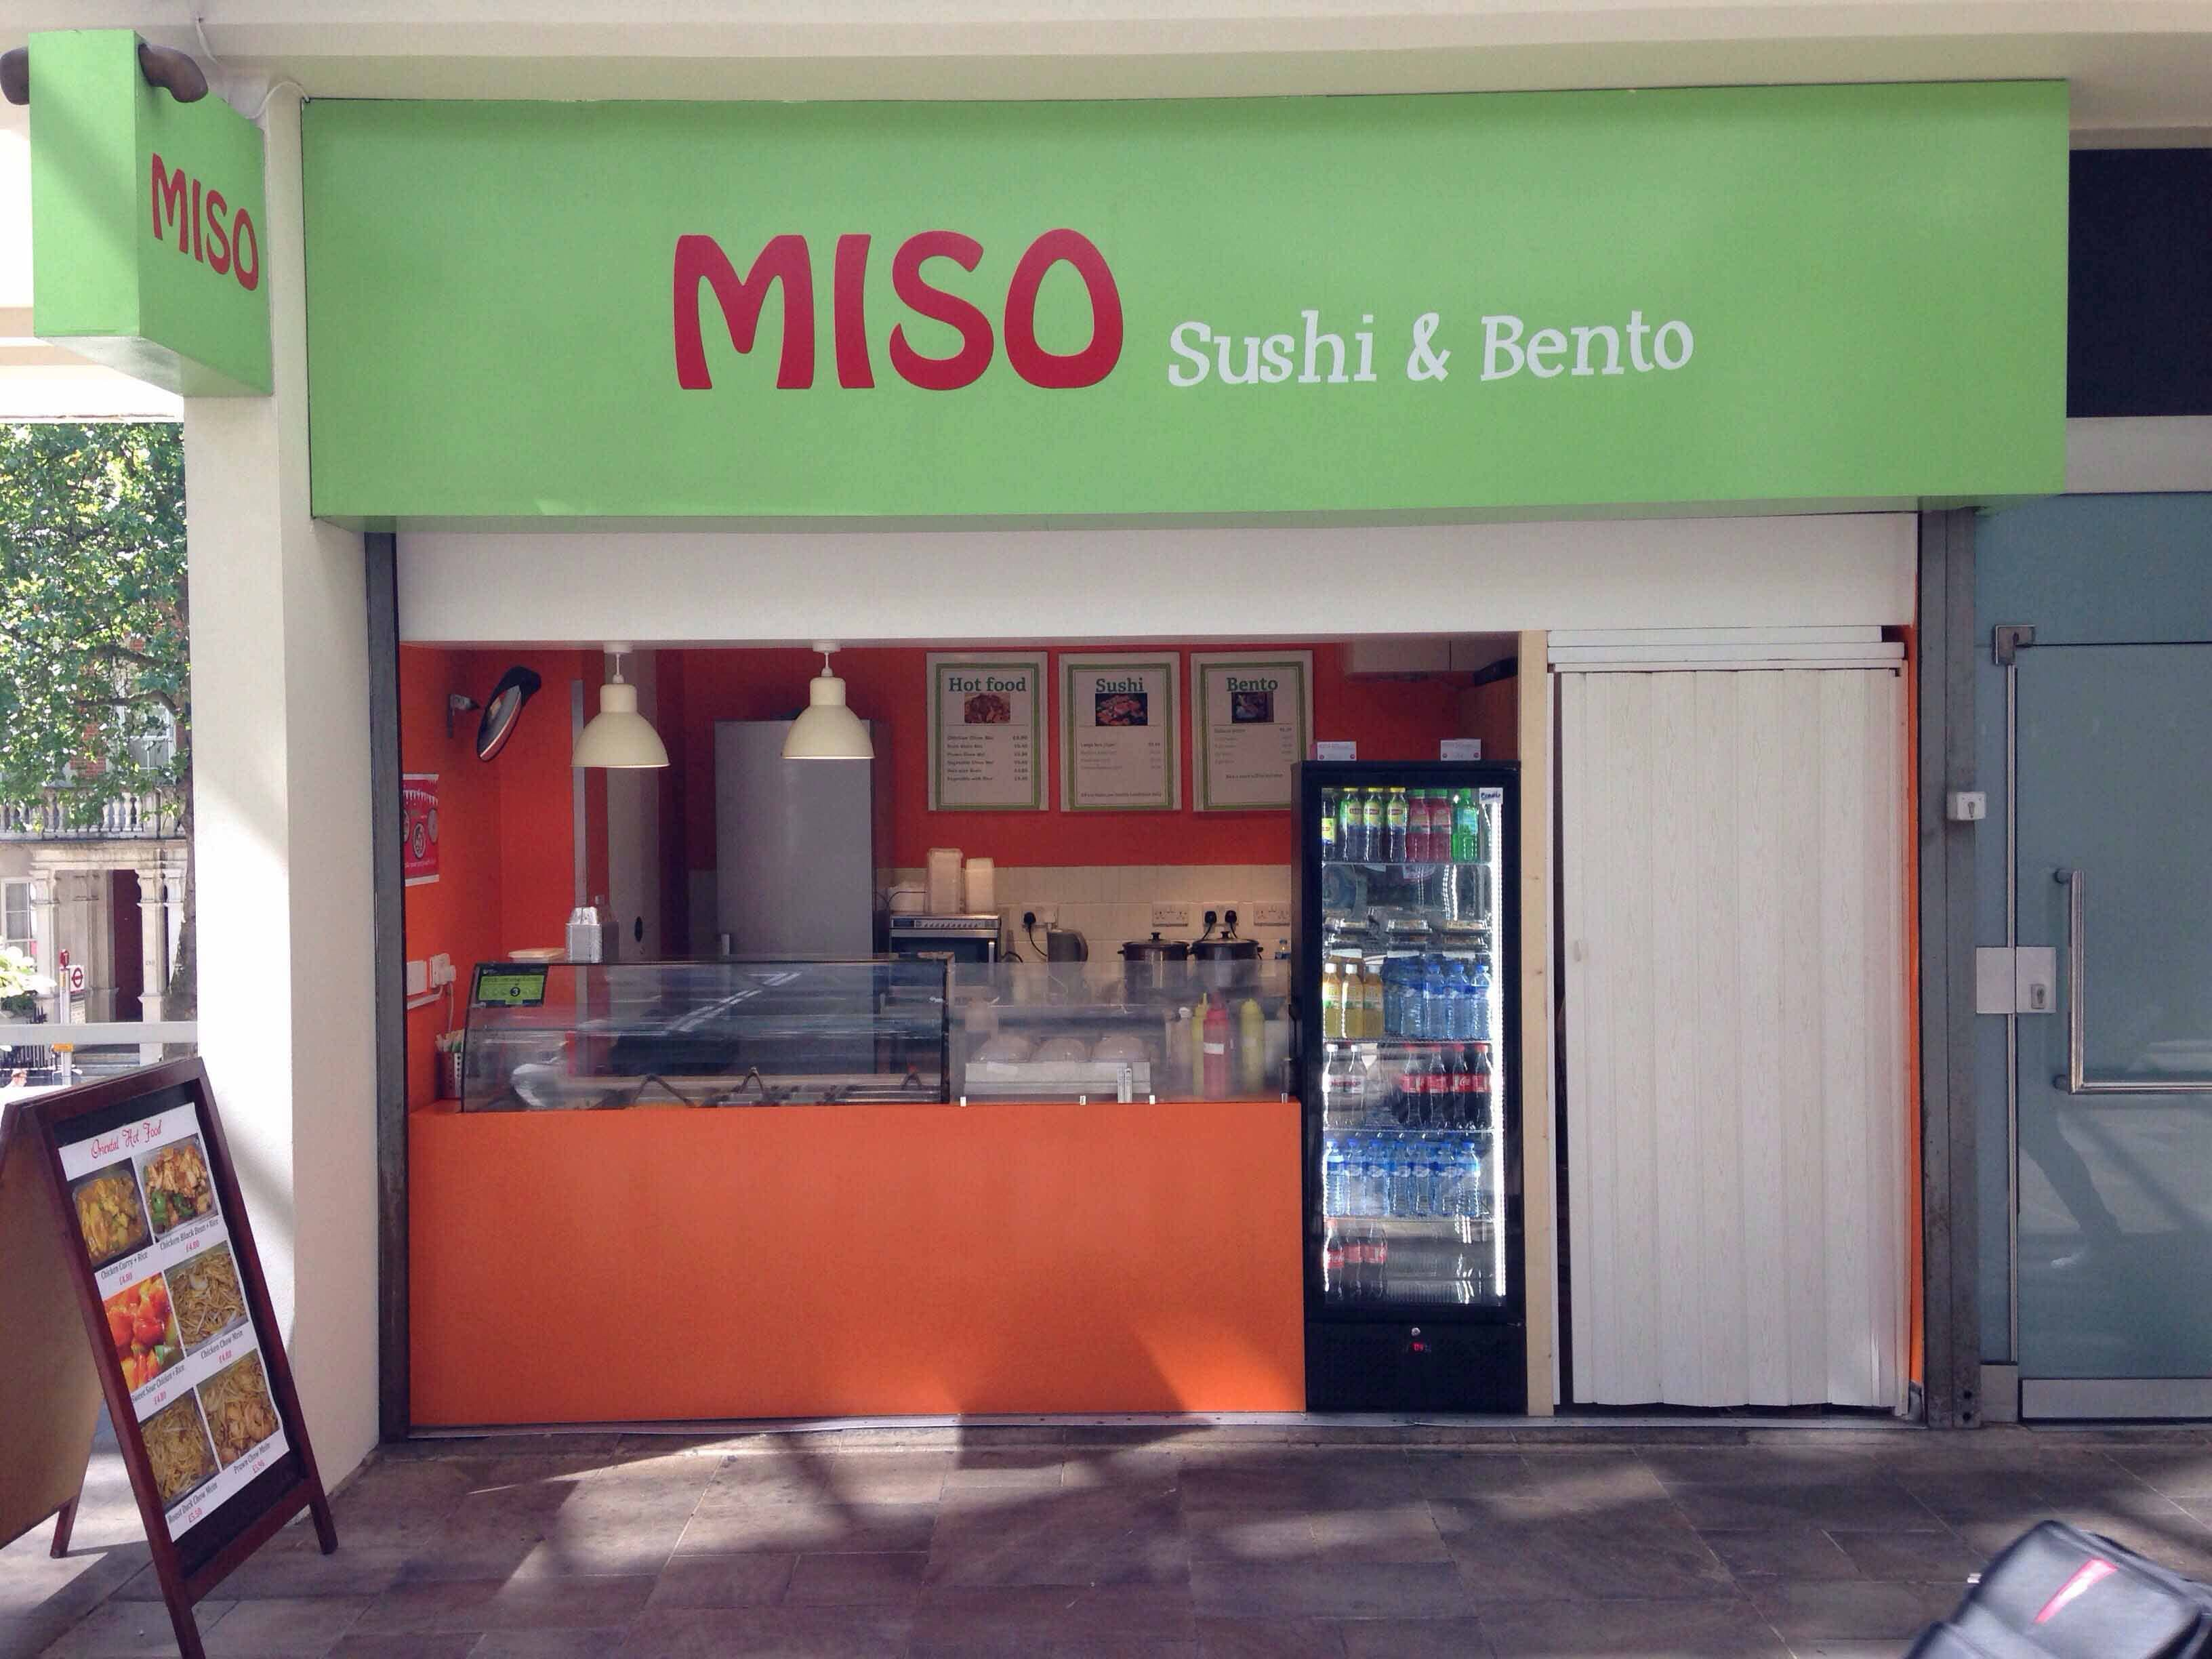 Miso Sushi and Bento